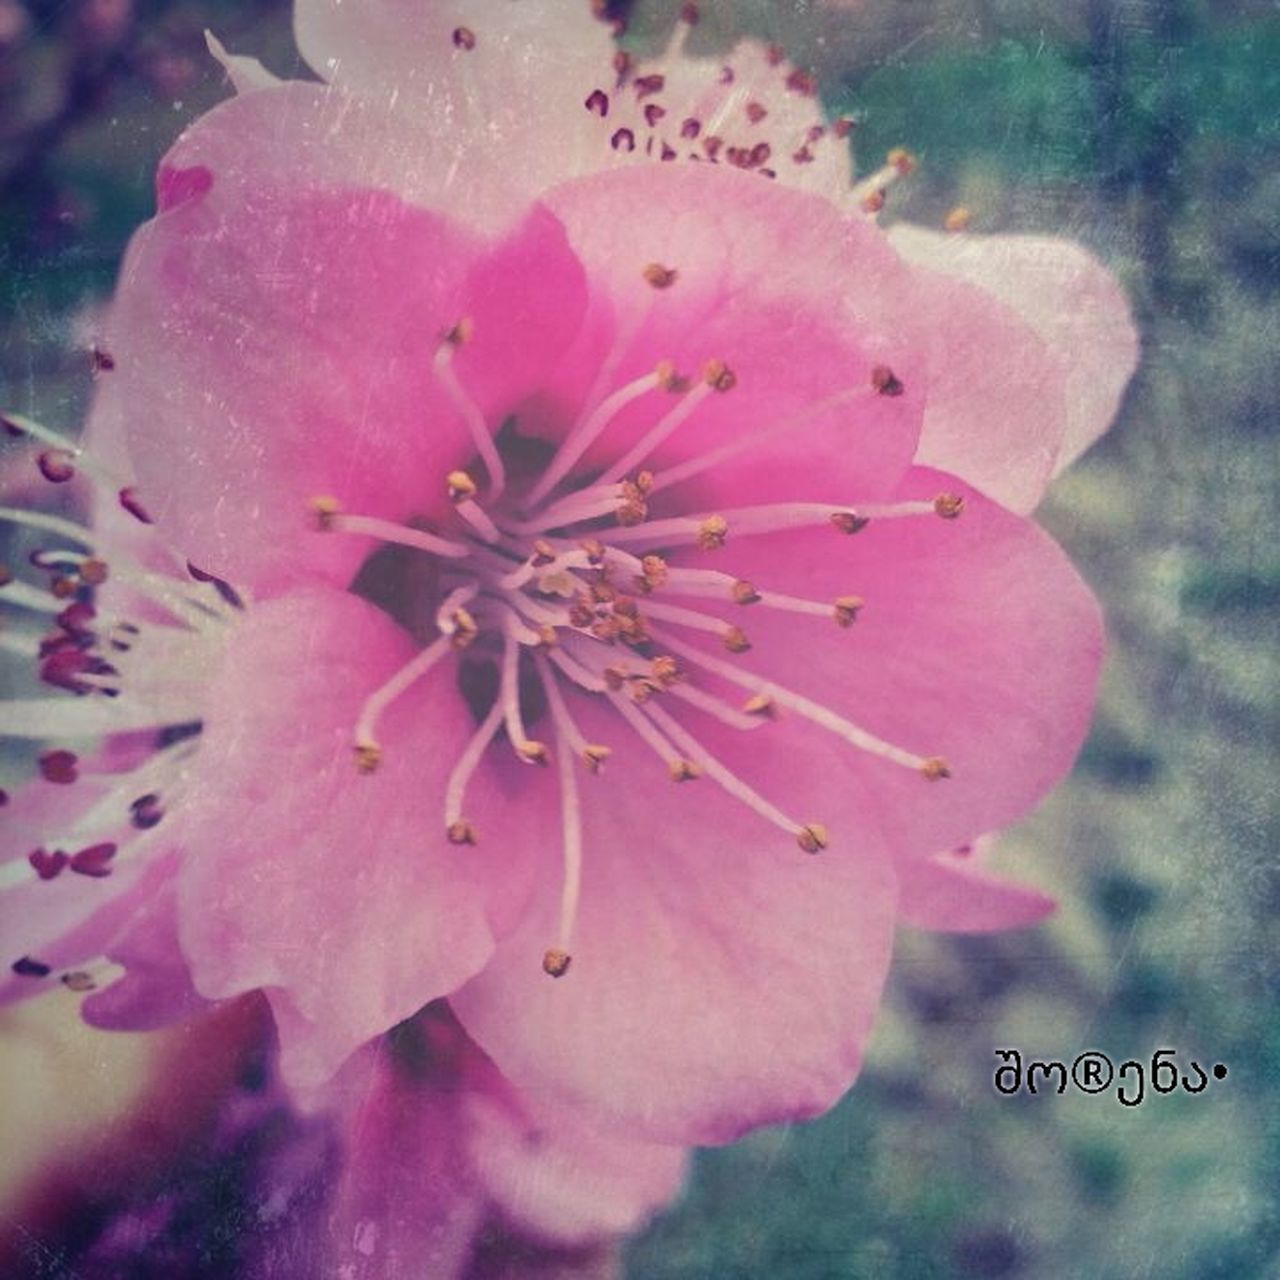 flower, freshness, petal, fragility, pink color, growth, close-up, beauty in nature, flower head, focus on foreground, nature, blooming, pollen, stamen, plant, single flower, in bloom, day, selective focus, outdoors